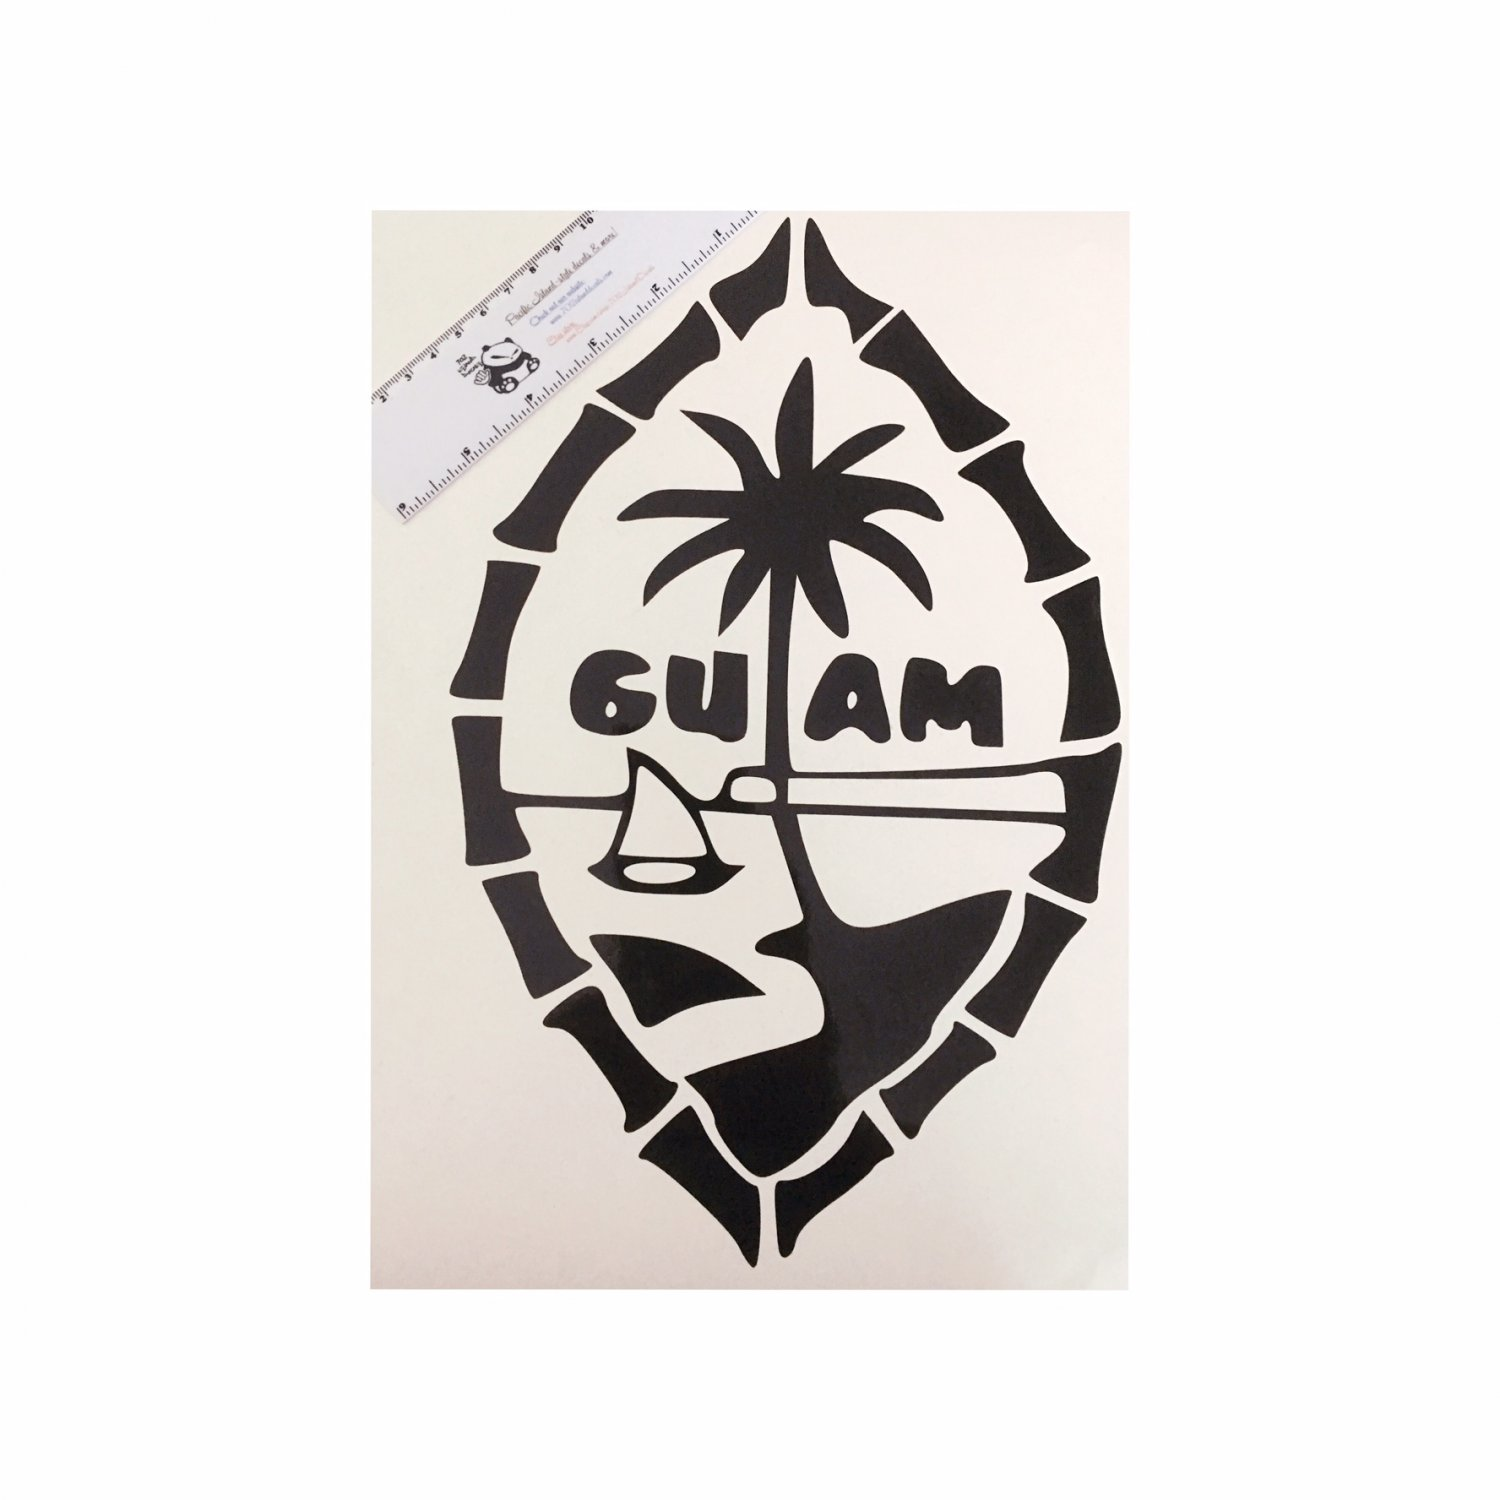 Guam Seal (Bamboo) vinyl decal - Available in all sizes / colors!  Chamorro